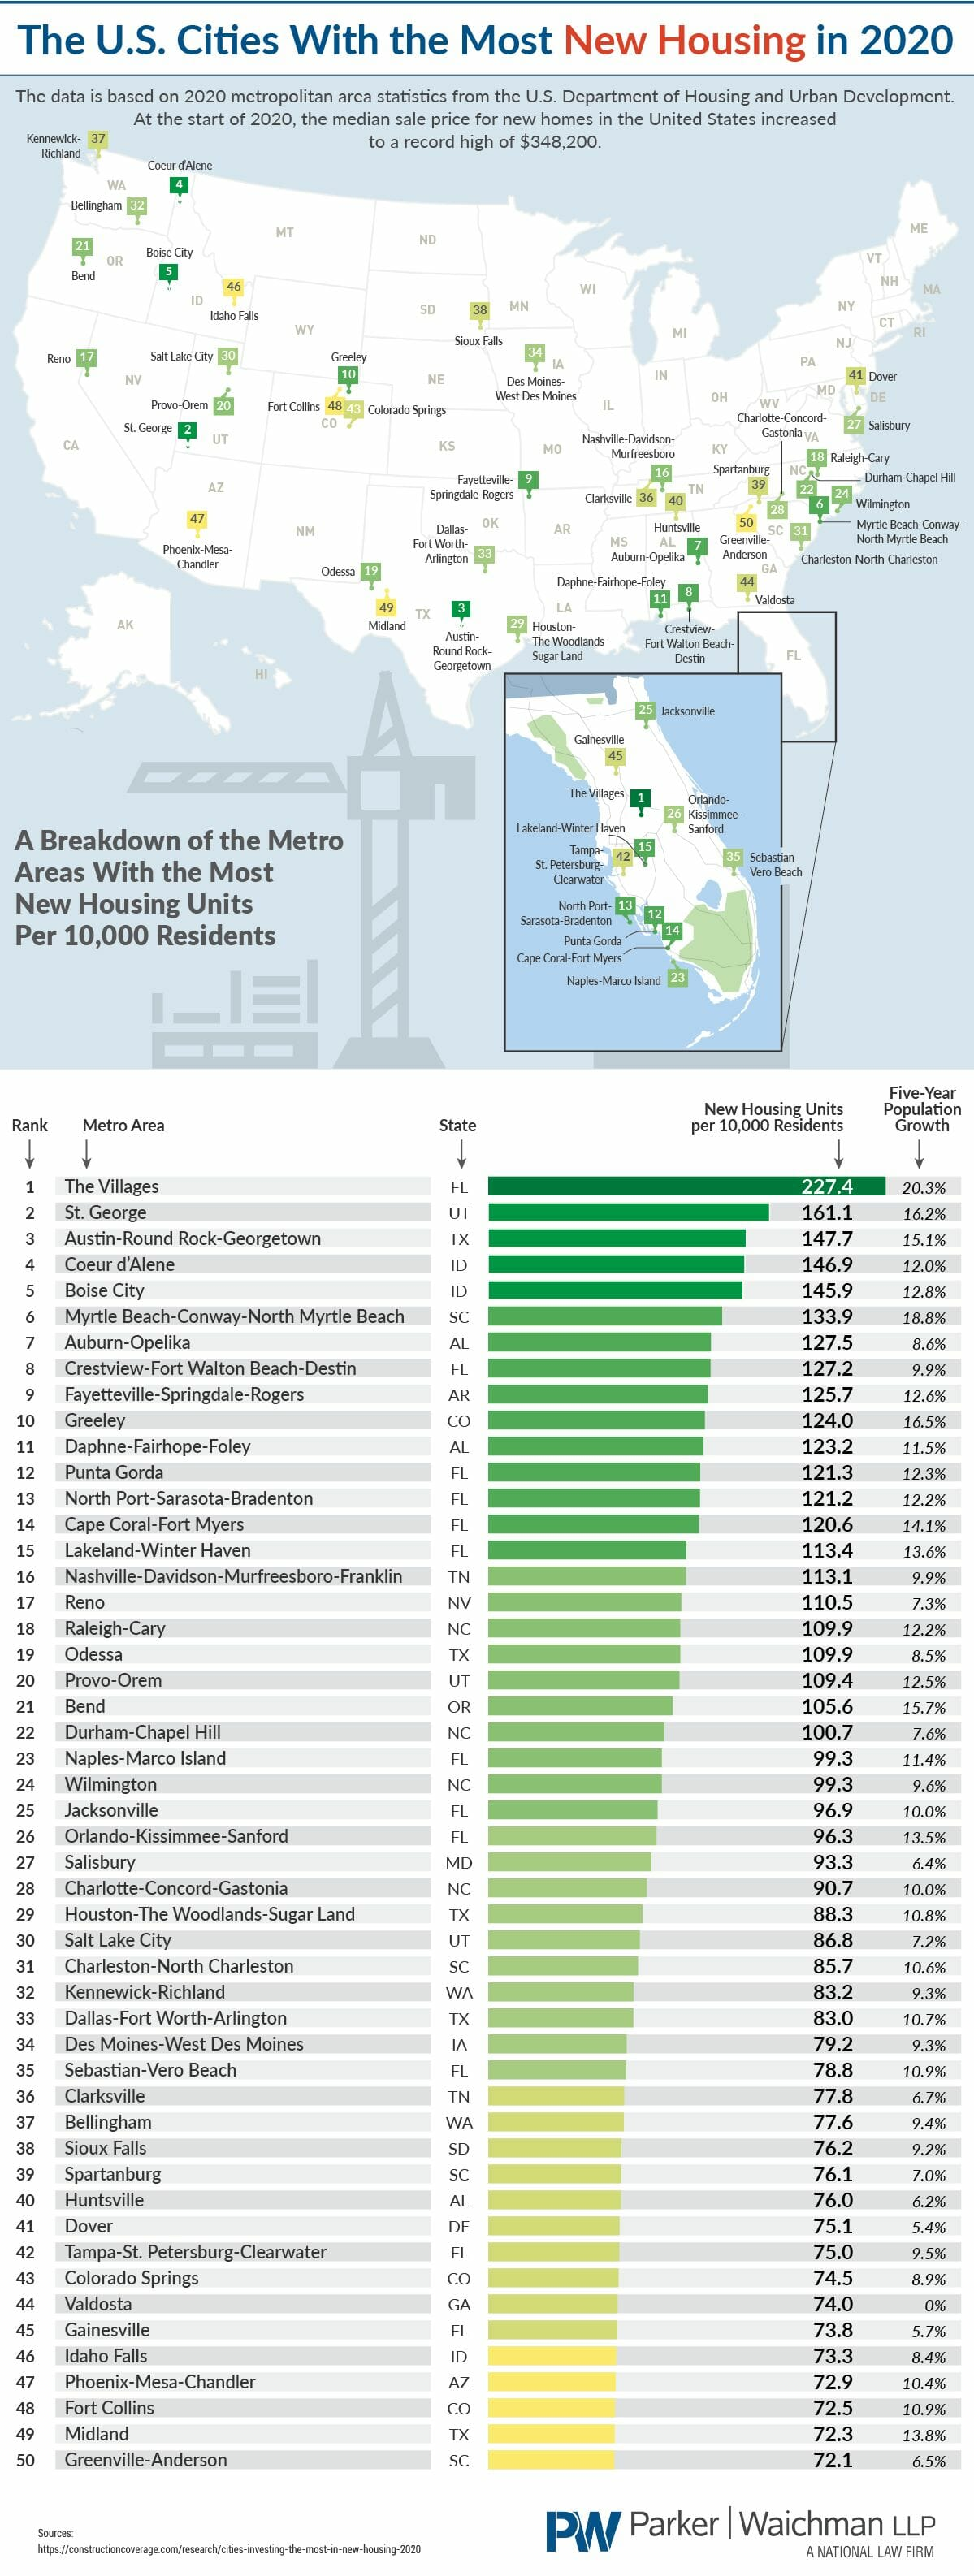 The U.S. Cities With the Most New Housing in 2020 - YourLawyer.com - Infographic